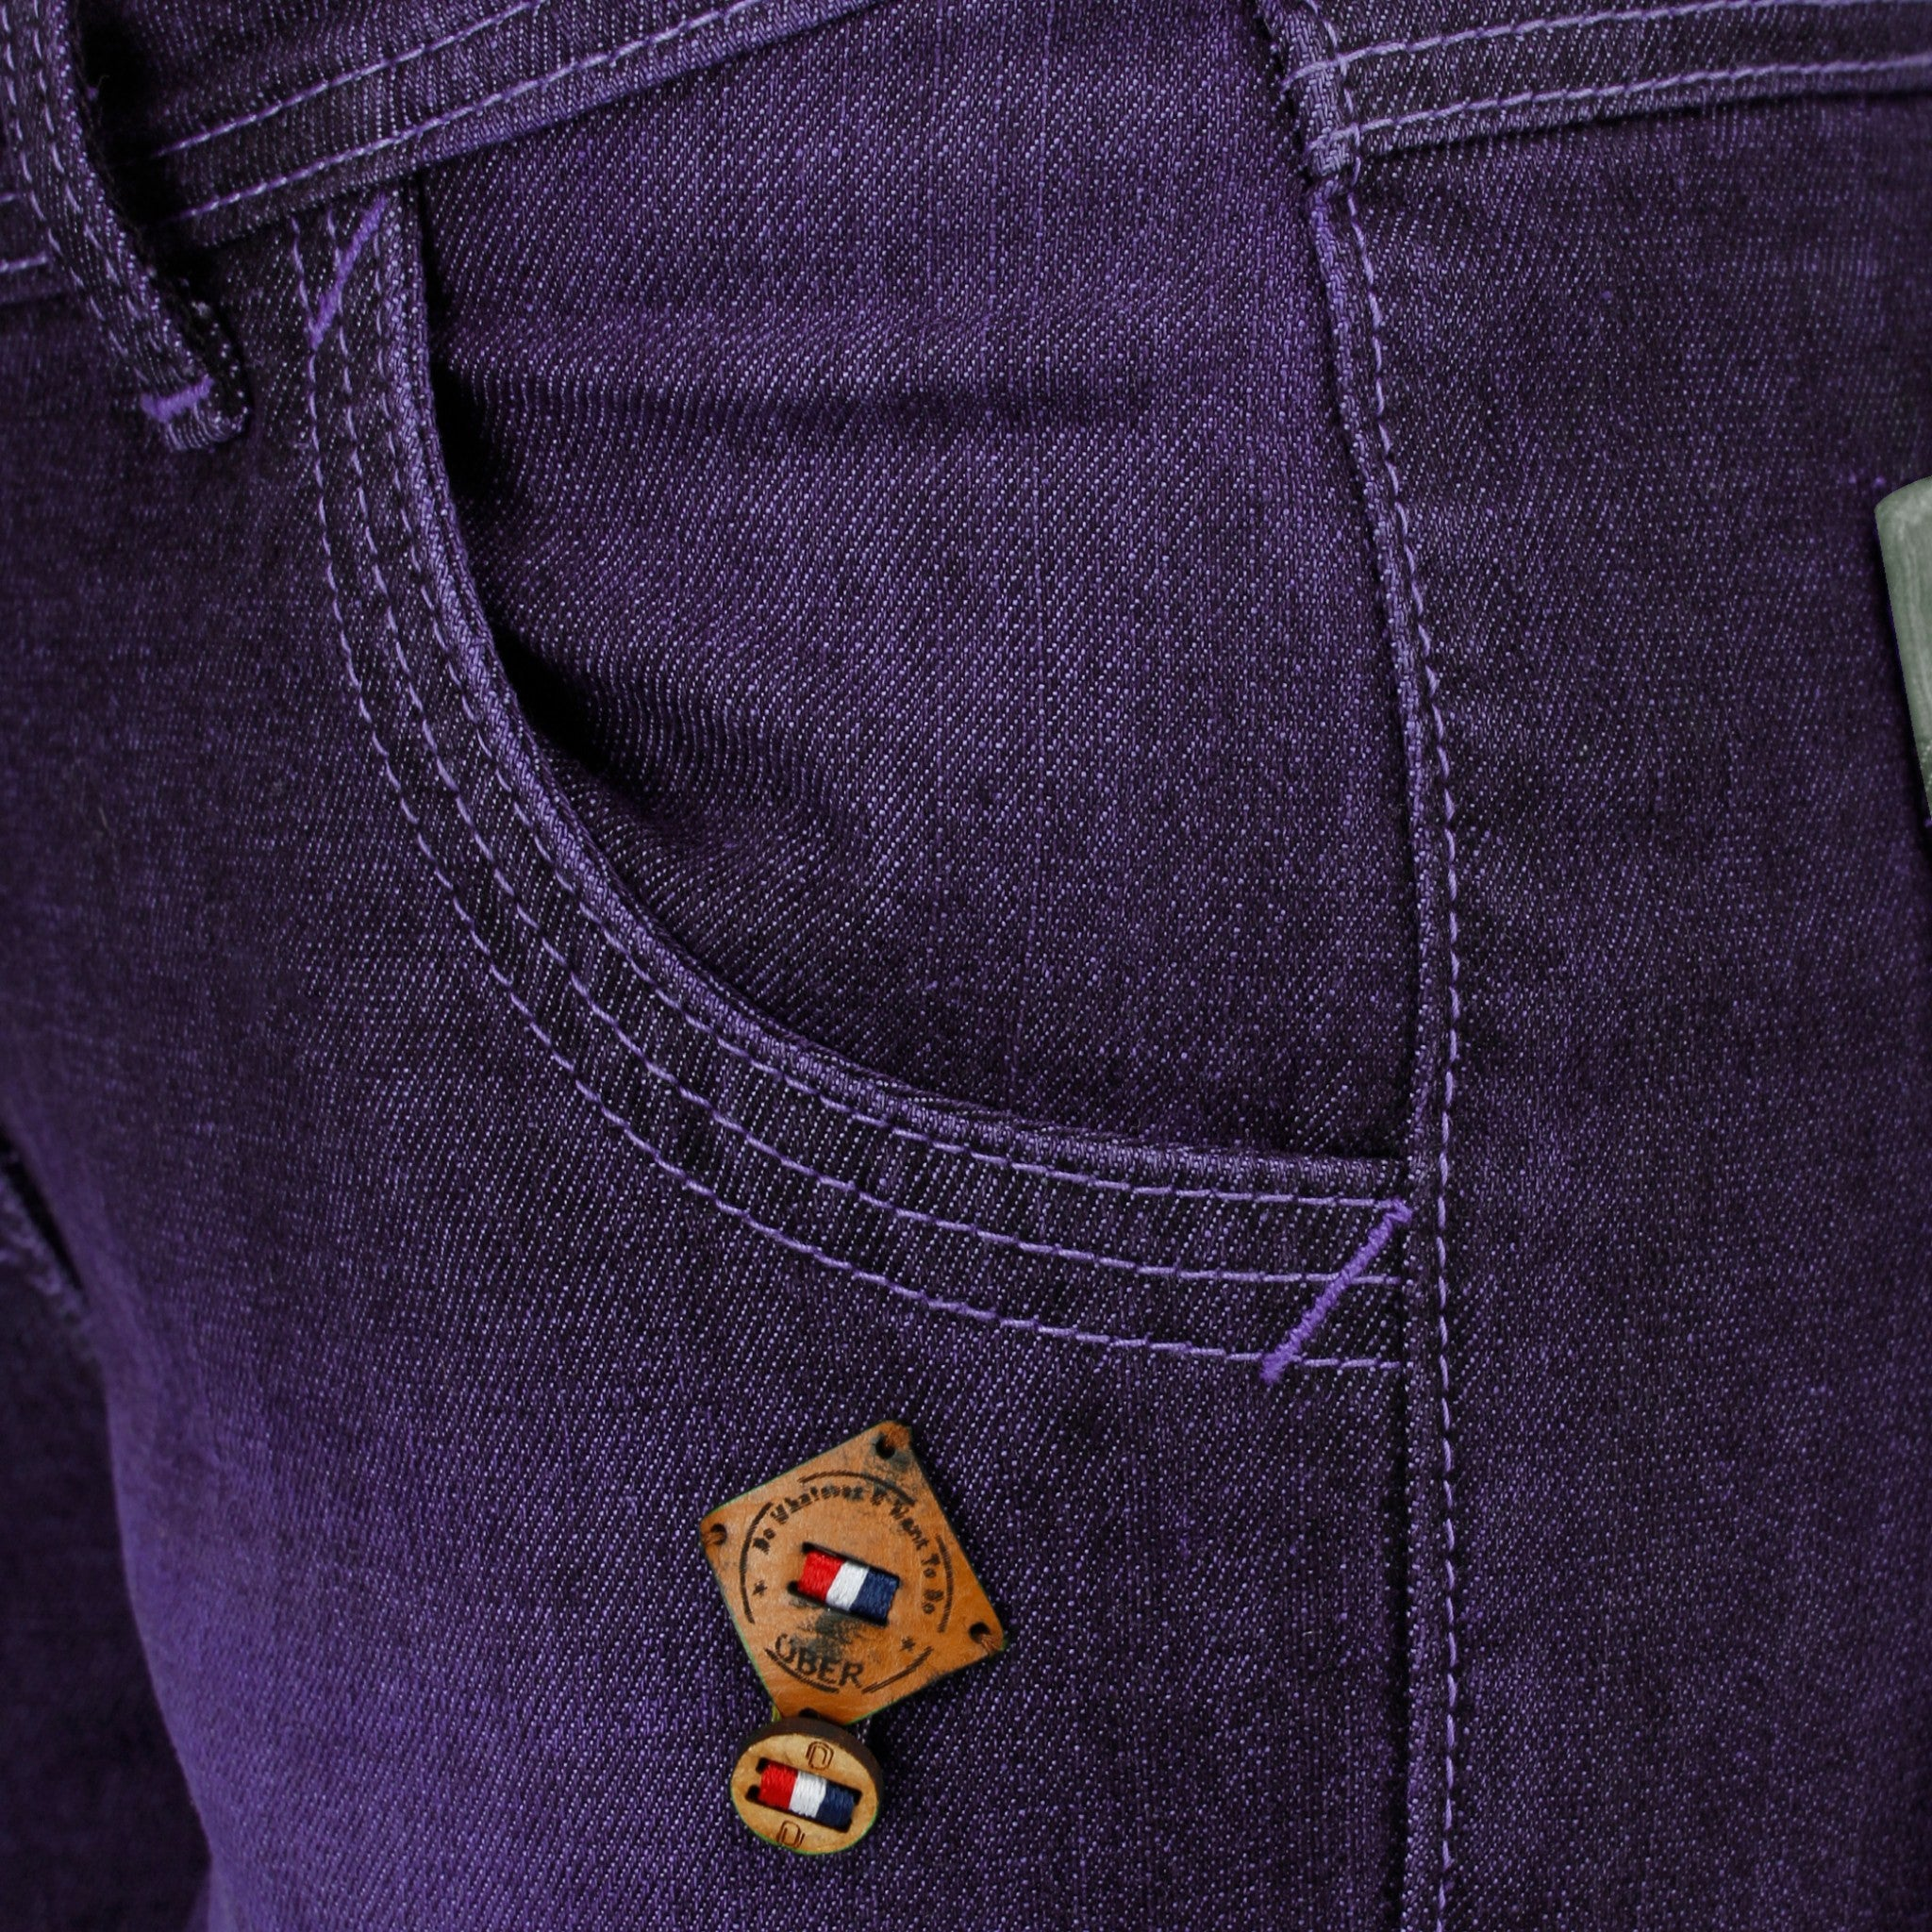 Magenta Denim Capri close up view of front pocket